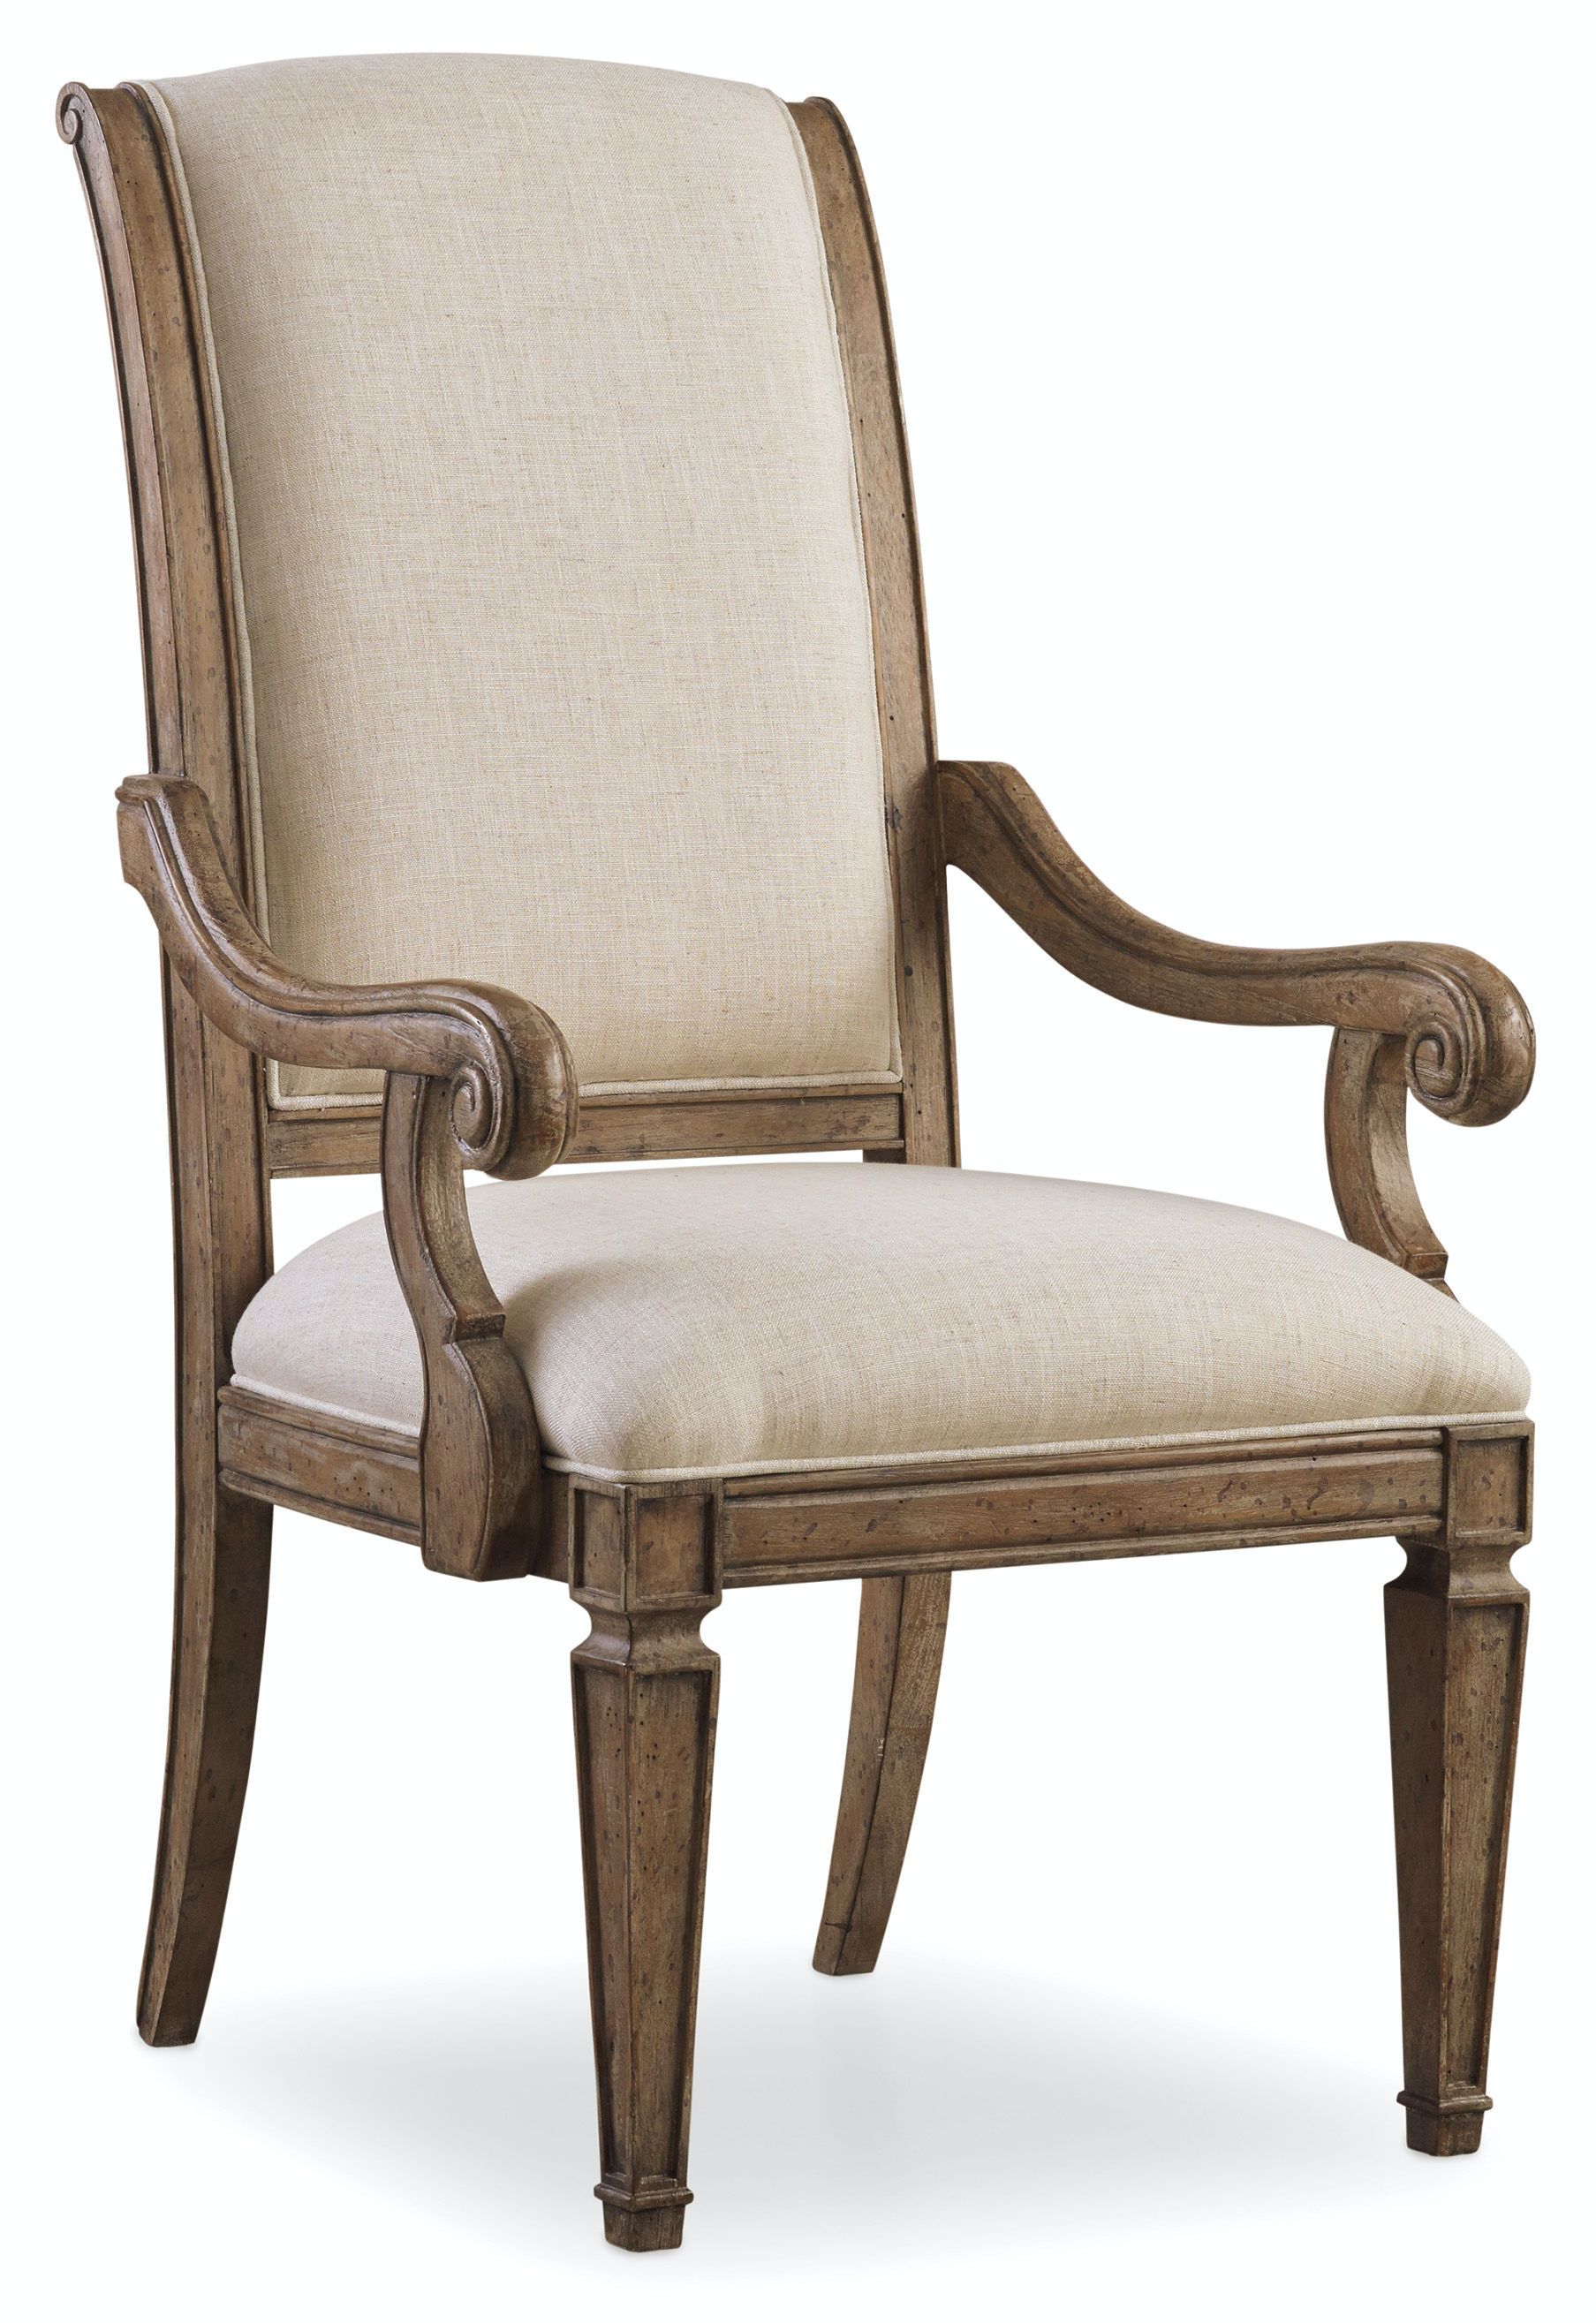 Hooker Furniture Solana Upholstered Arm Chair 5291 75500